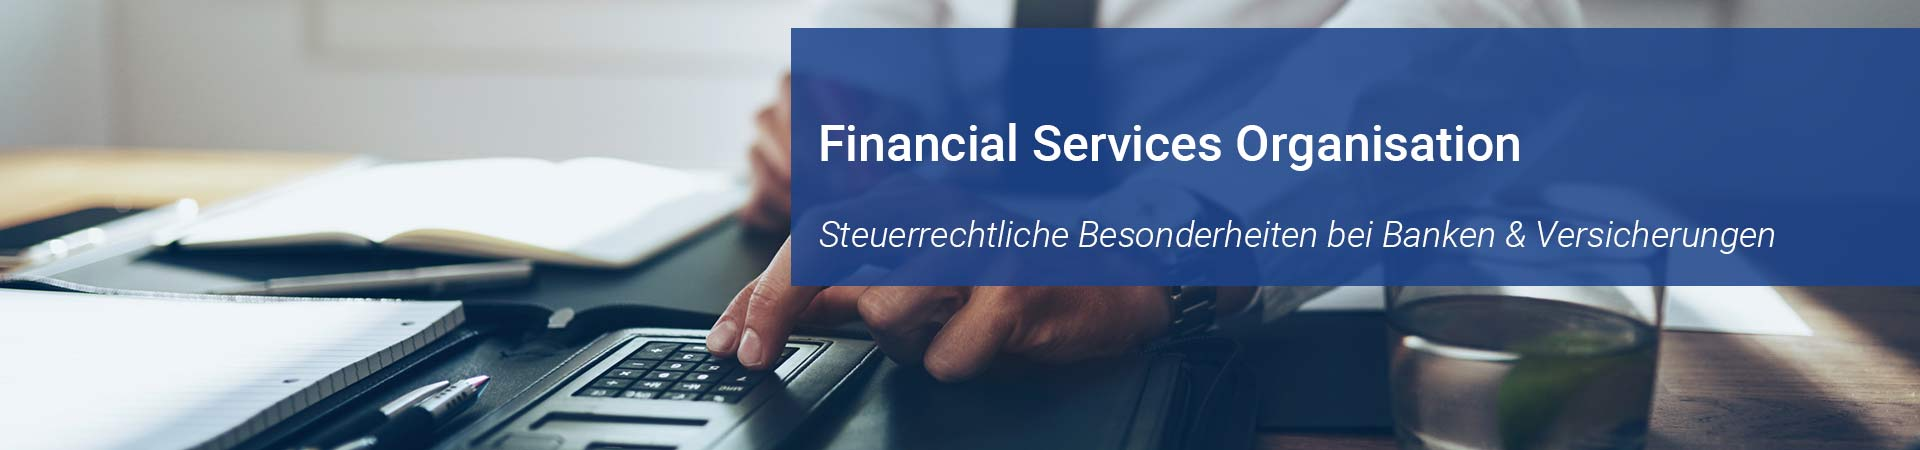 Financial Services Organisation